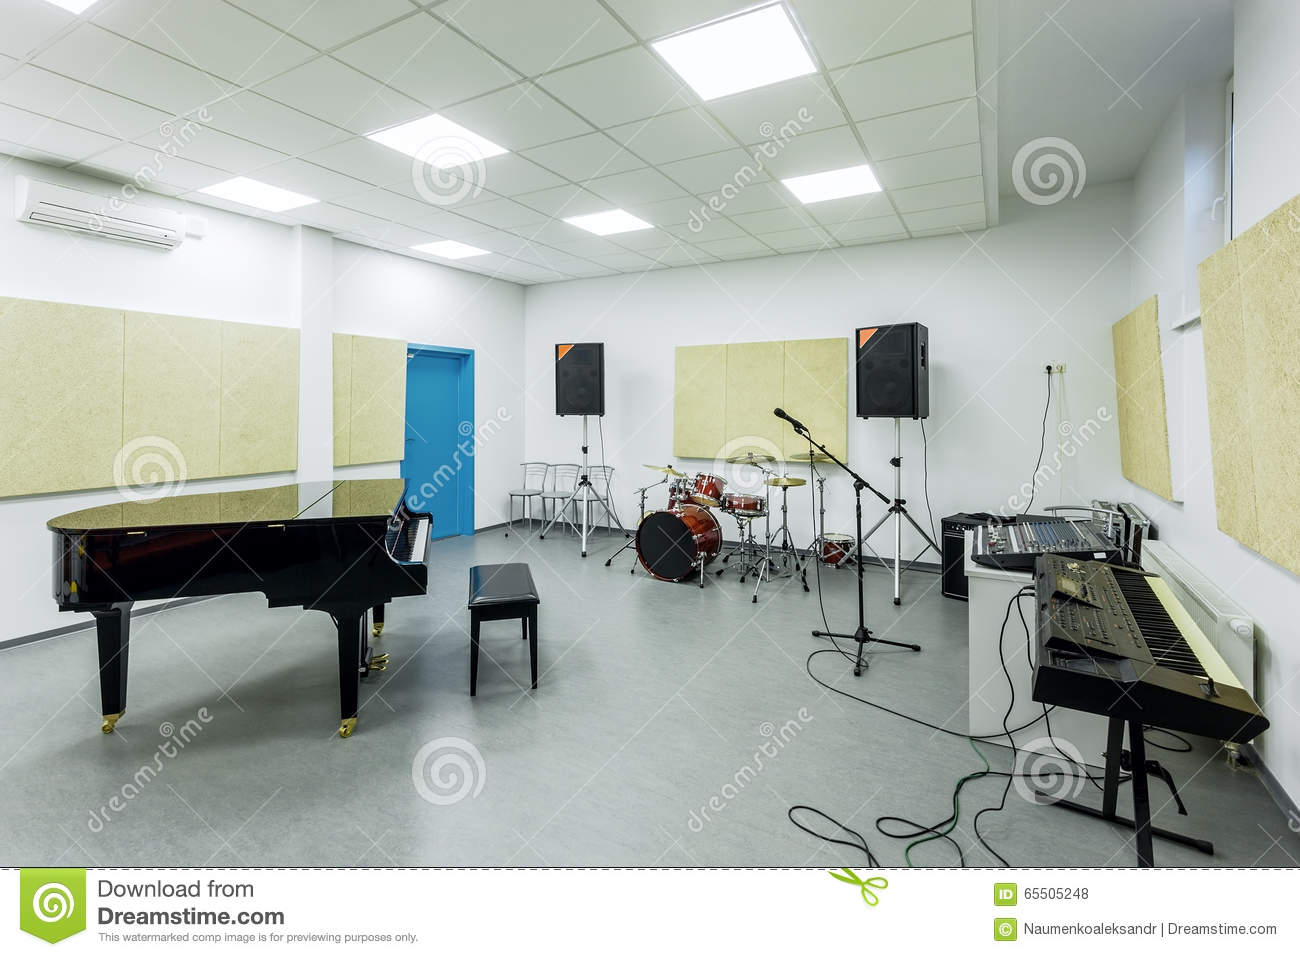 Modern Classroom Lesson Indicators : Class music lessons of the academy modern education interior editorial stock photo image